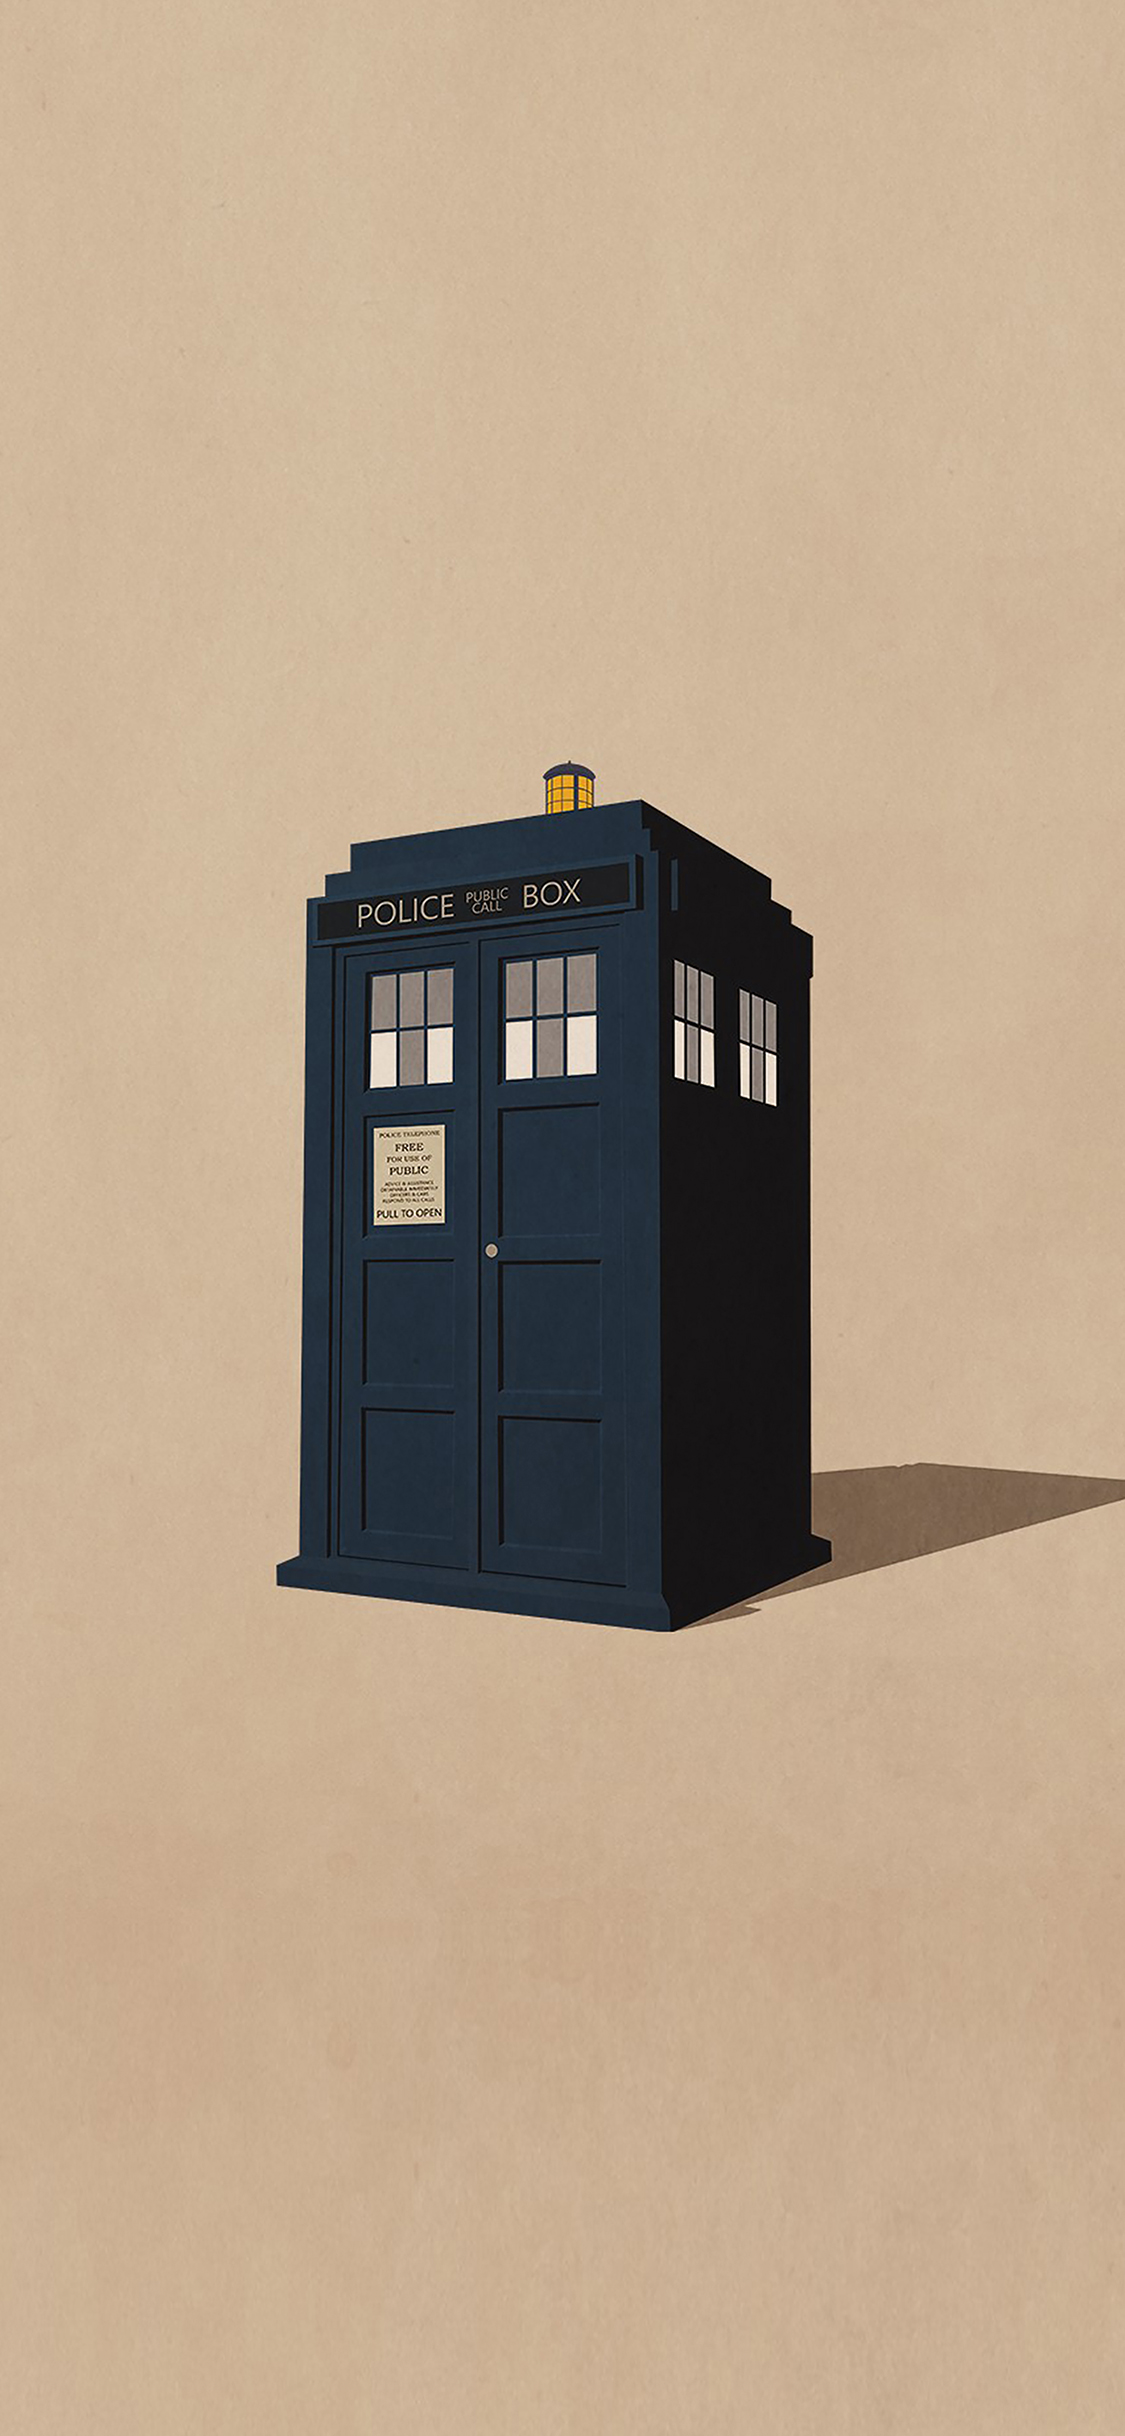 iPhoneXpapers.com-Apple-iPhone-wallpaper-af11-police-box-public-illust